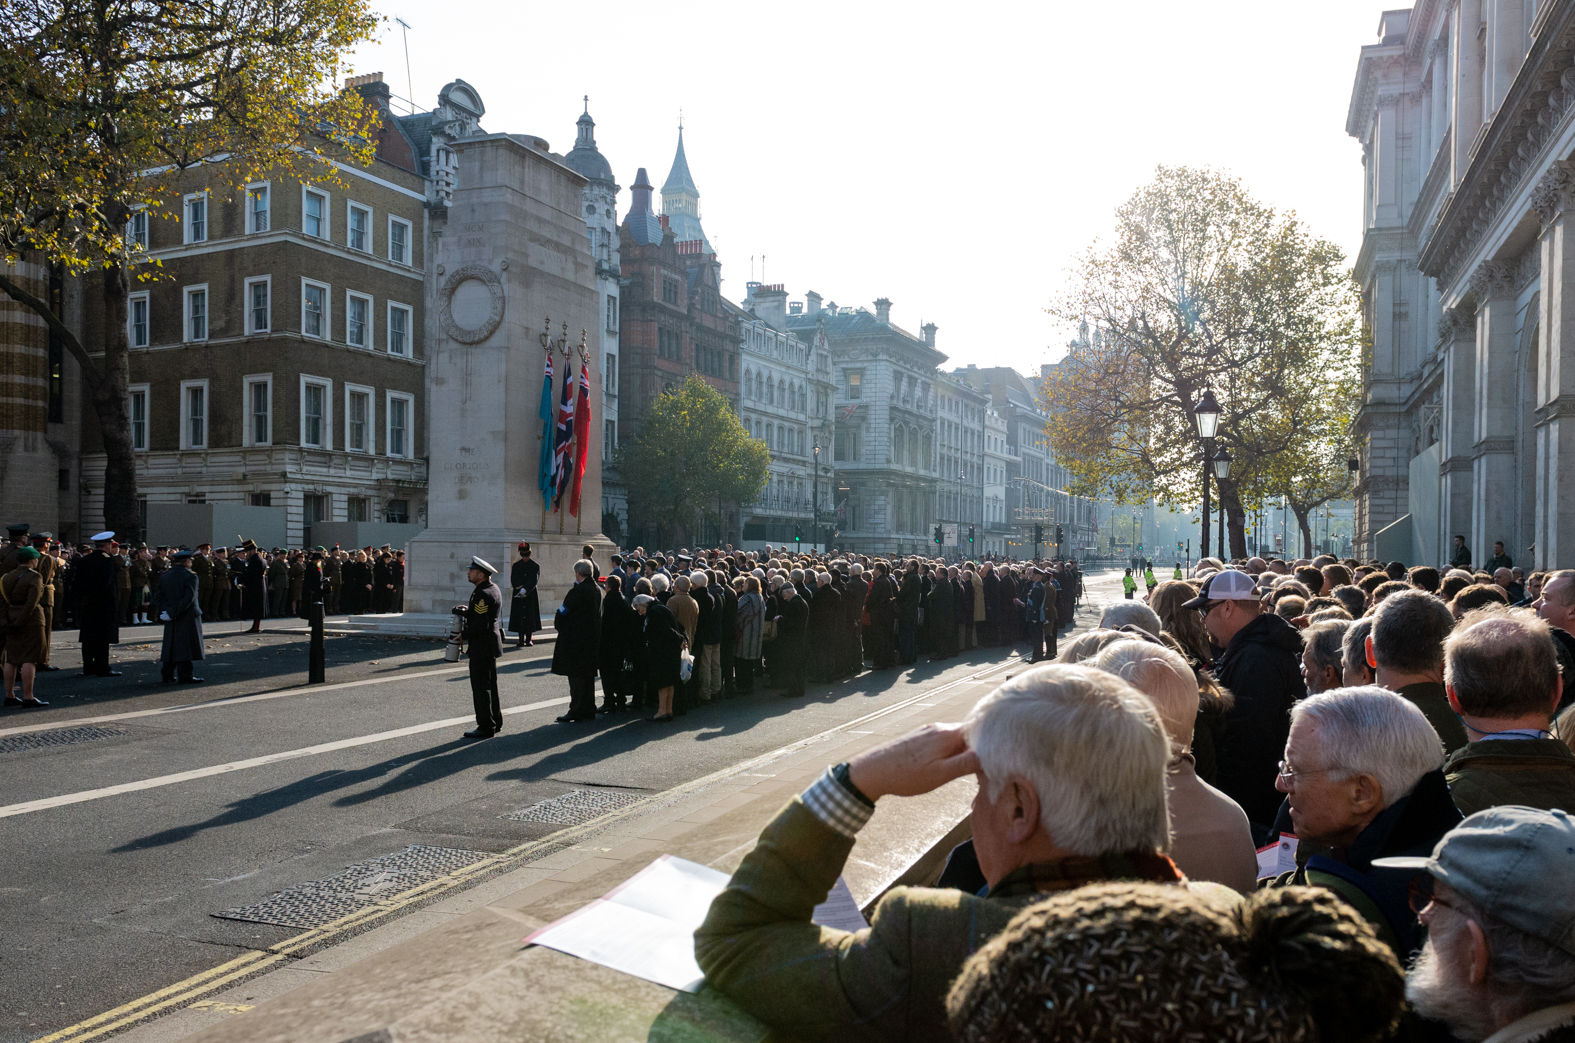 Armistice Day service at the Cenotaph, Whitehall